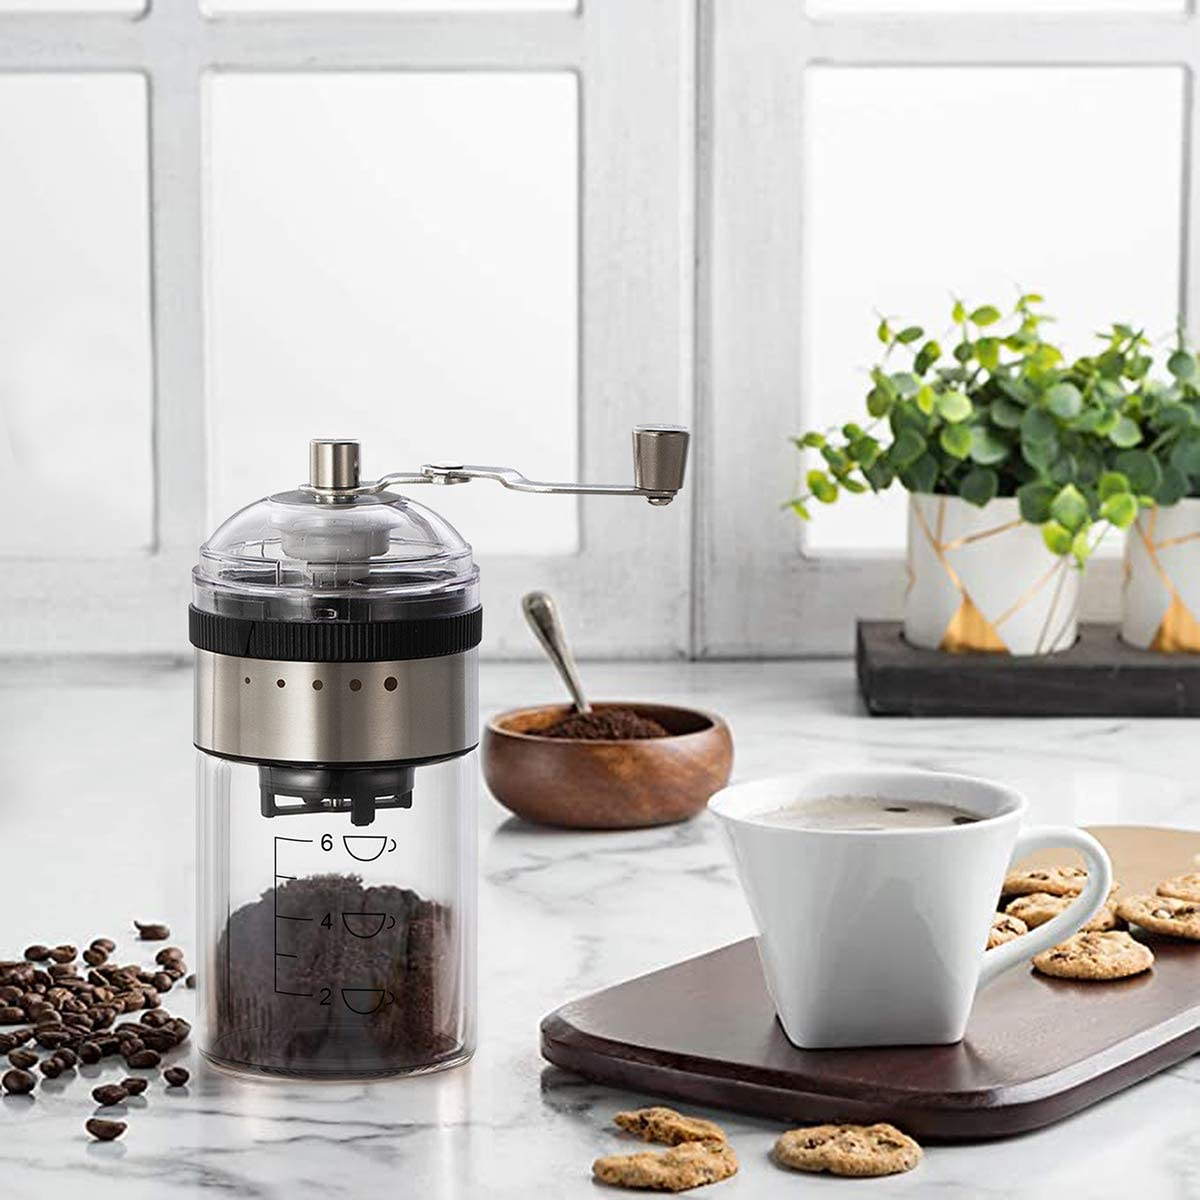 Manual Coffee Grinder,BuLanqi with Adjustable Setting Conical Ceramic Burr Mill,Whole Bean Burr Coffee Grinder,Portable Hand Coffee Mill,for Drip coffee Hand coffee,American coffee,Espresso